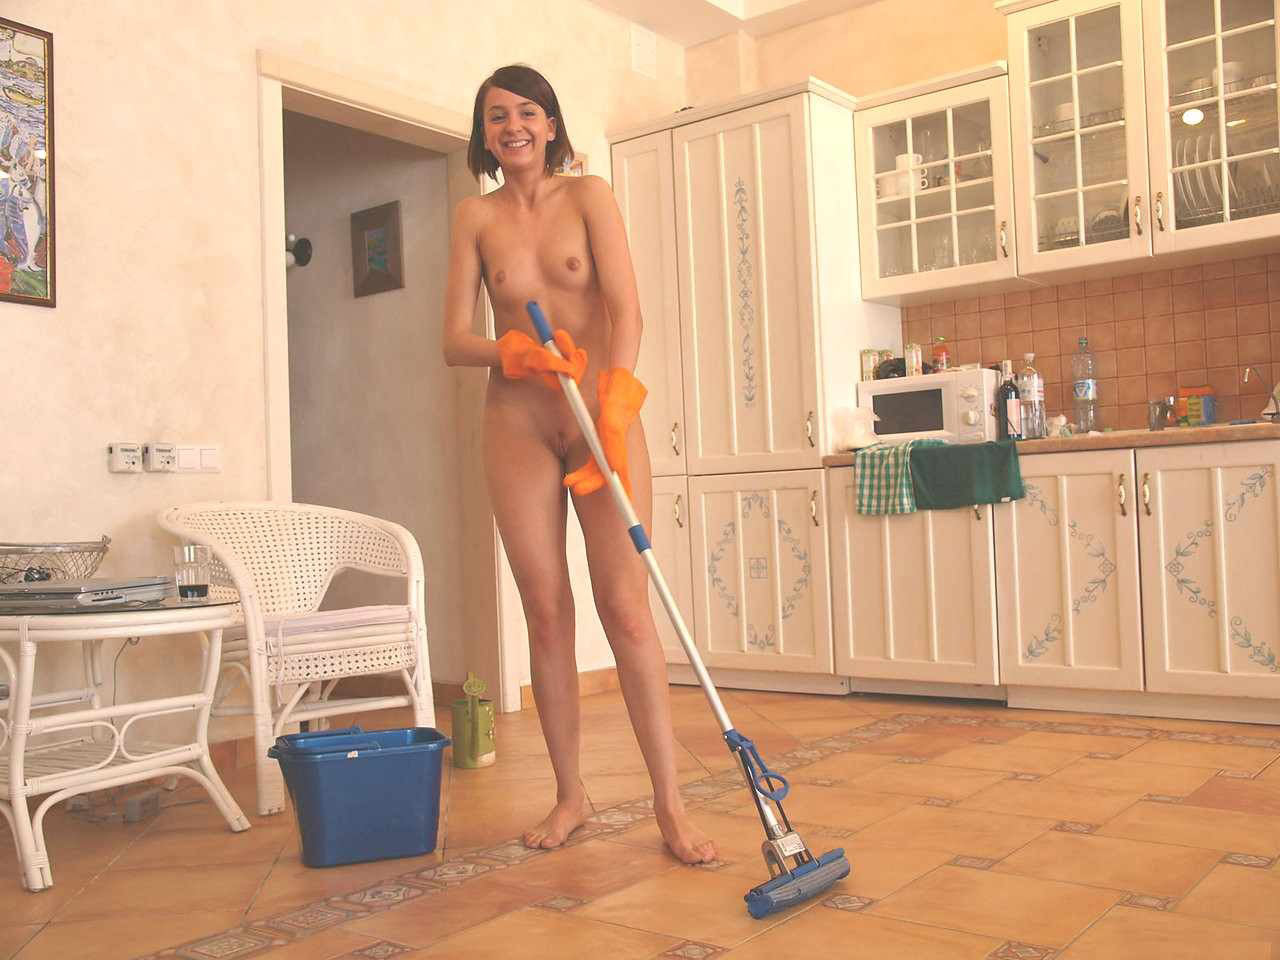 Nude woman doing house work, shannon doherty playboy pictures